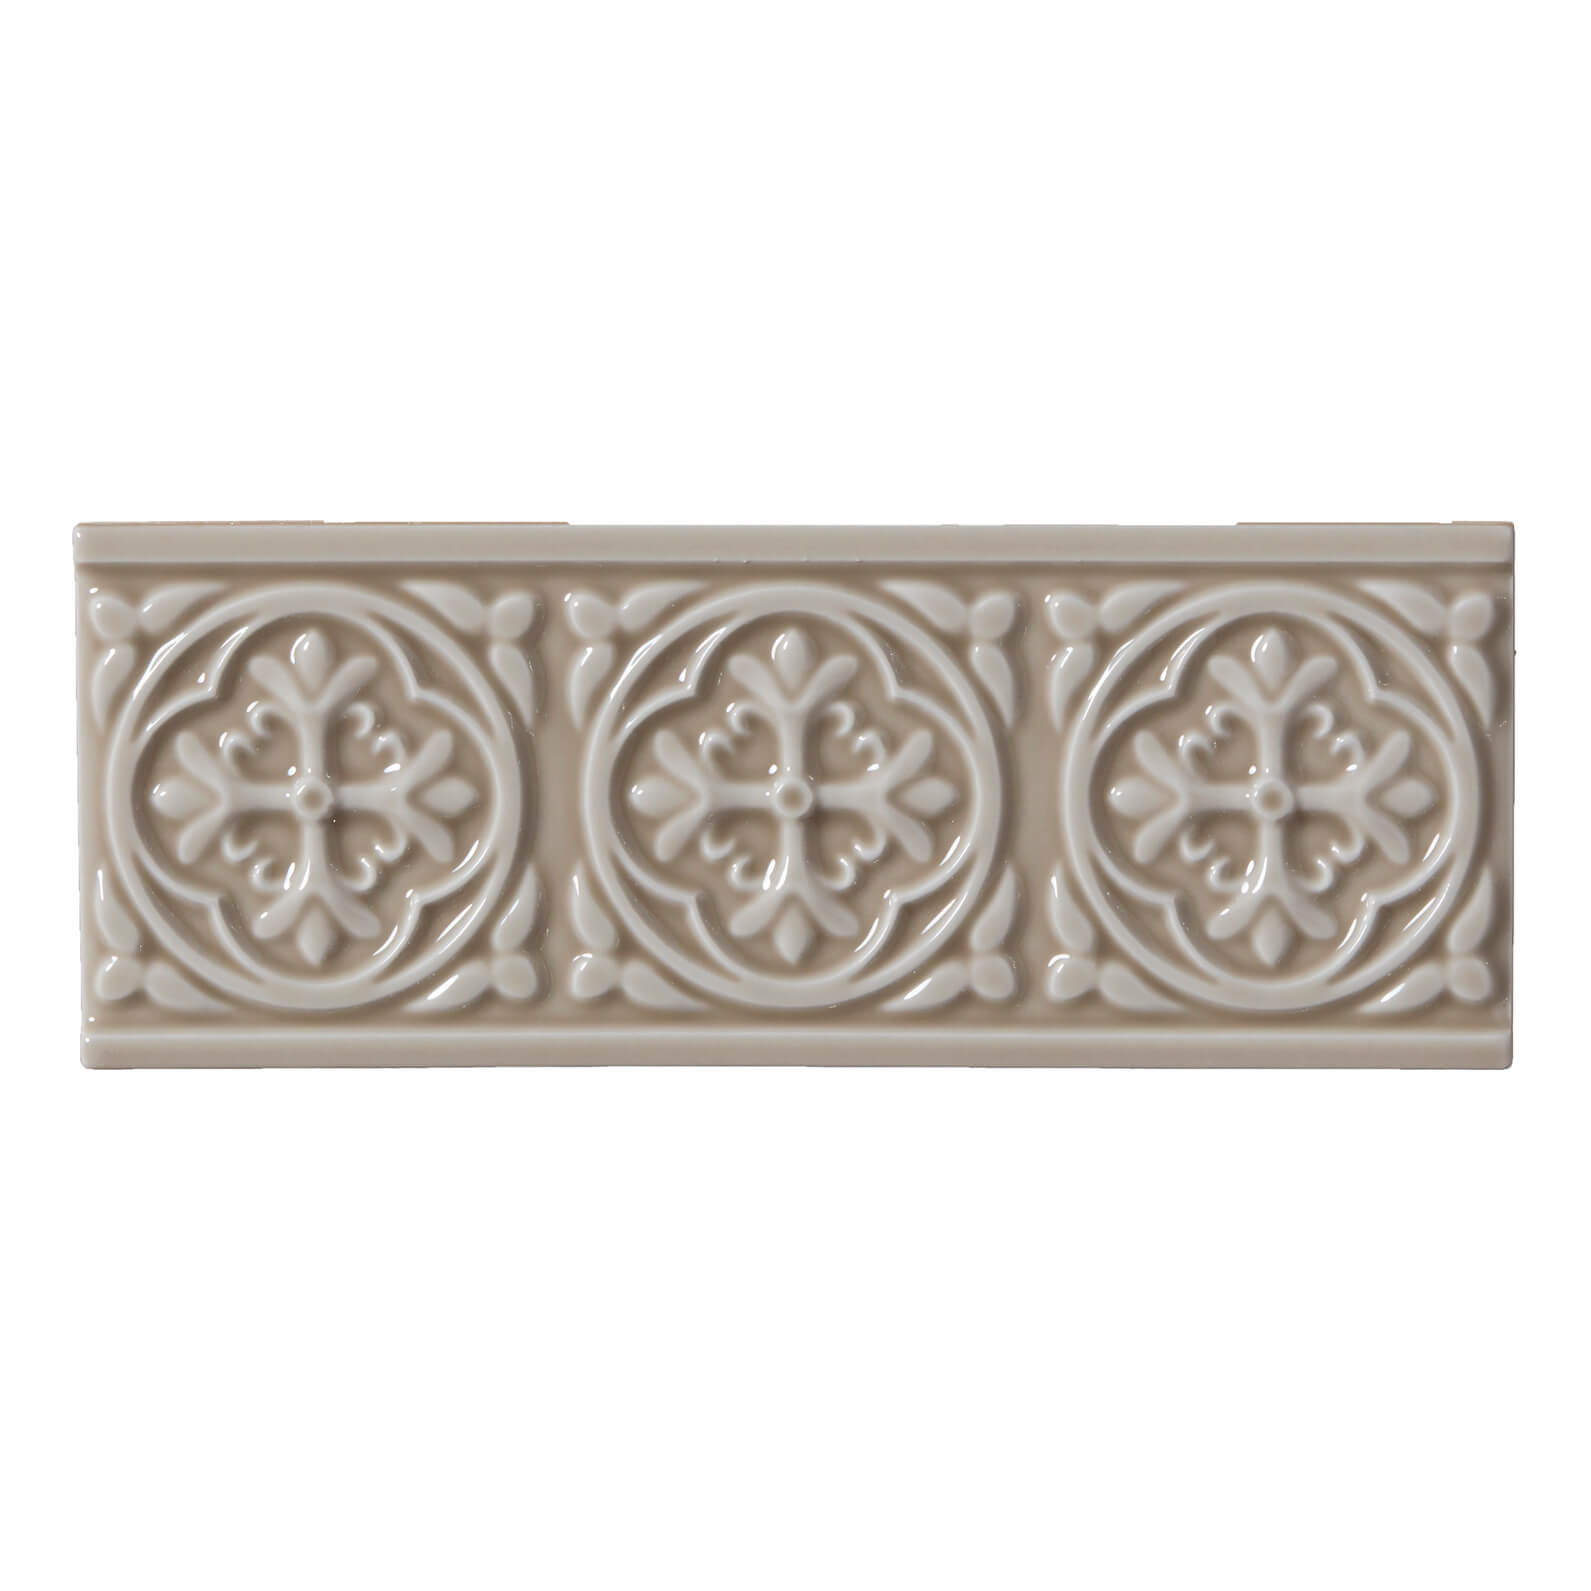 ADST4003 - RELIEVE PALM BEACH - 7.5 cm X 19.8 cm